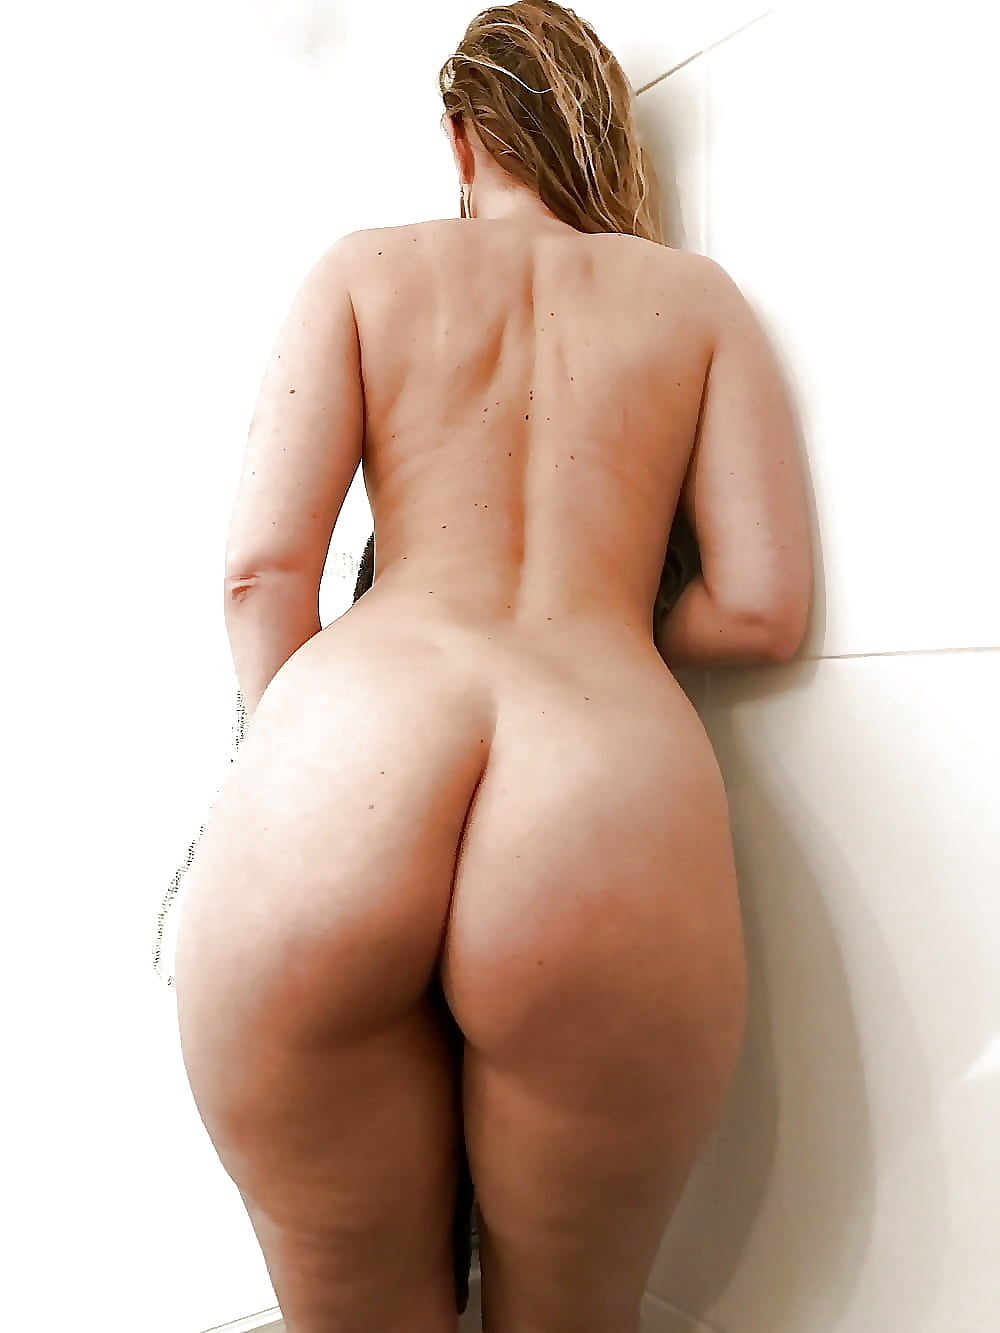 Plus Size Women Naked Butts